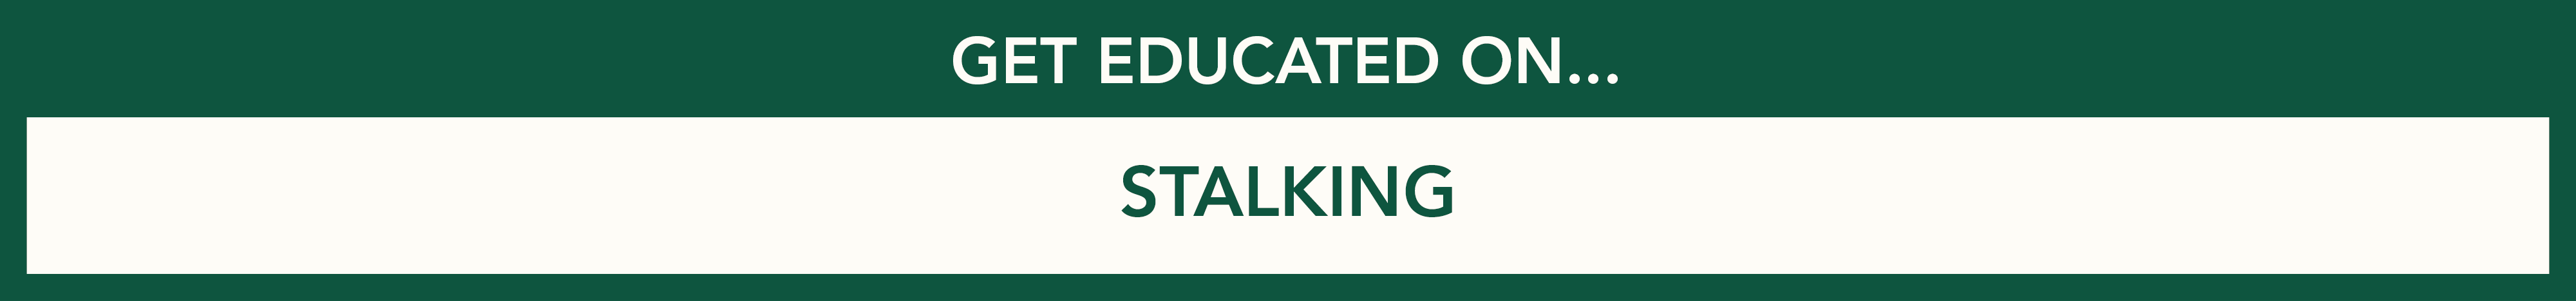 Get educated on stalking